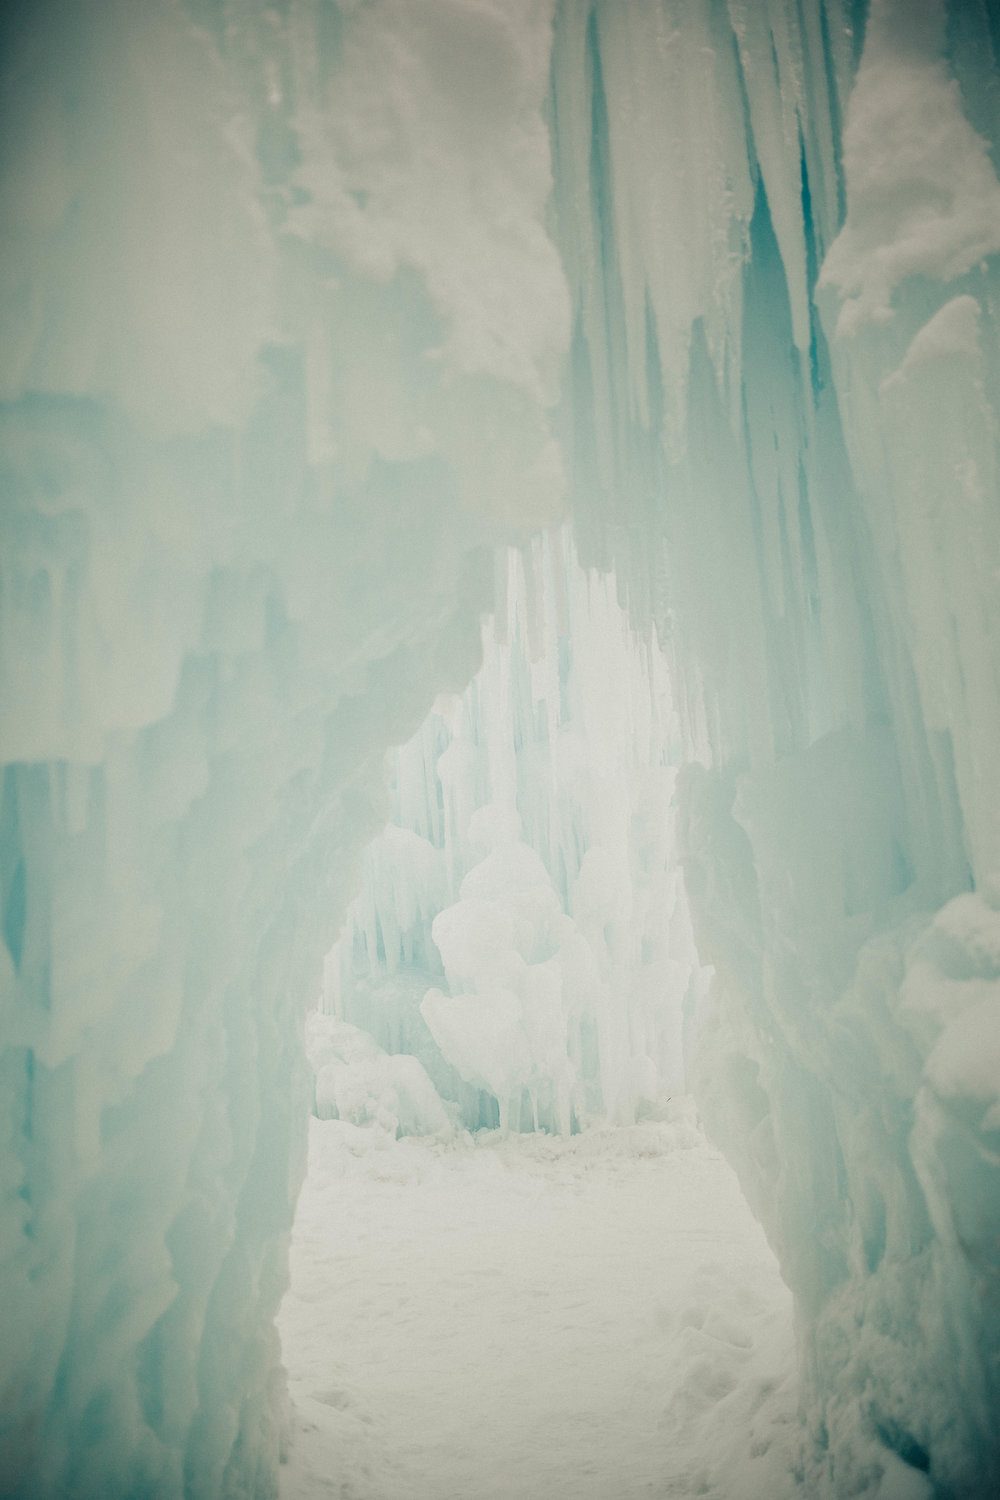 The majestic ice castles which was completely private for our Instax Ice Queens